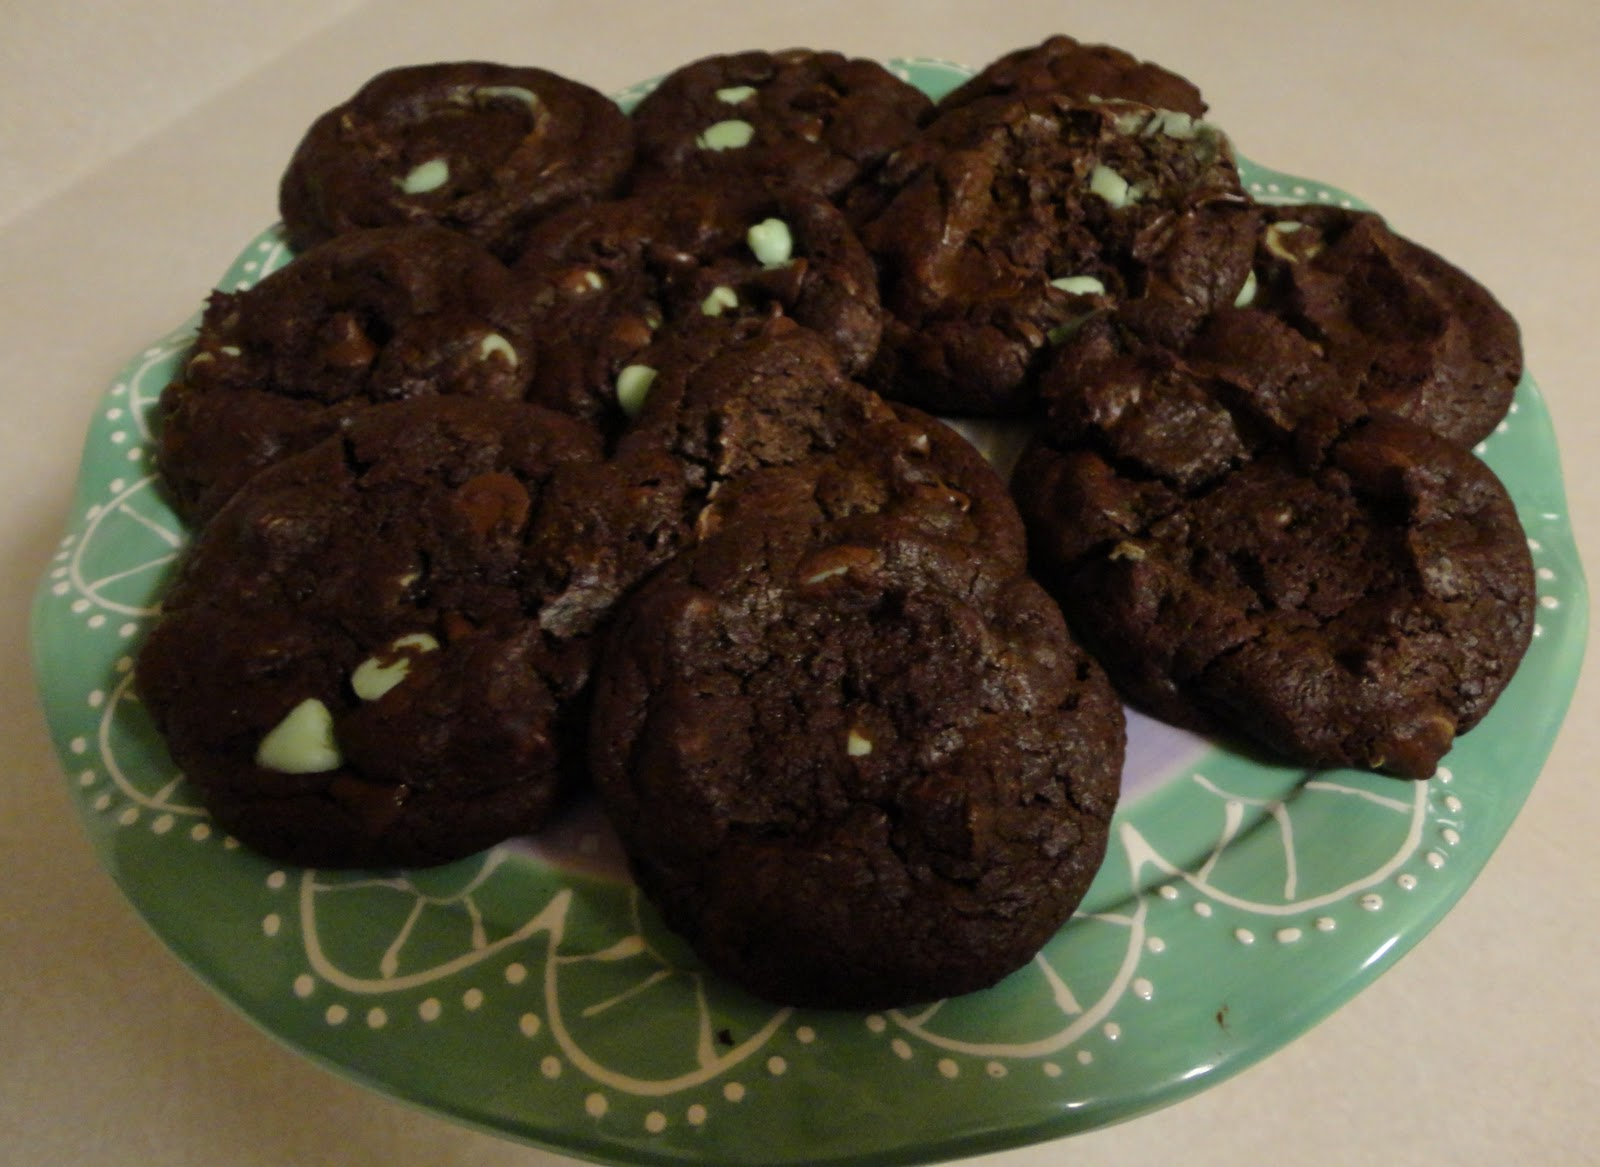 Cakes and Cookies by Andrea: Dark Chocolate Mint Chip Cookies